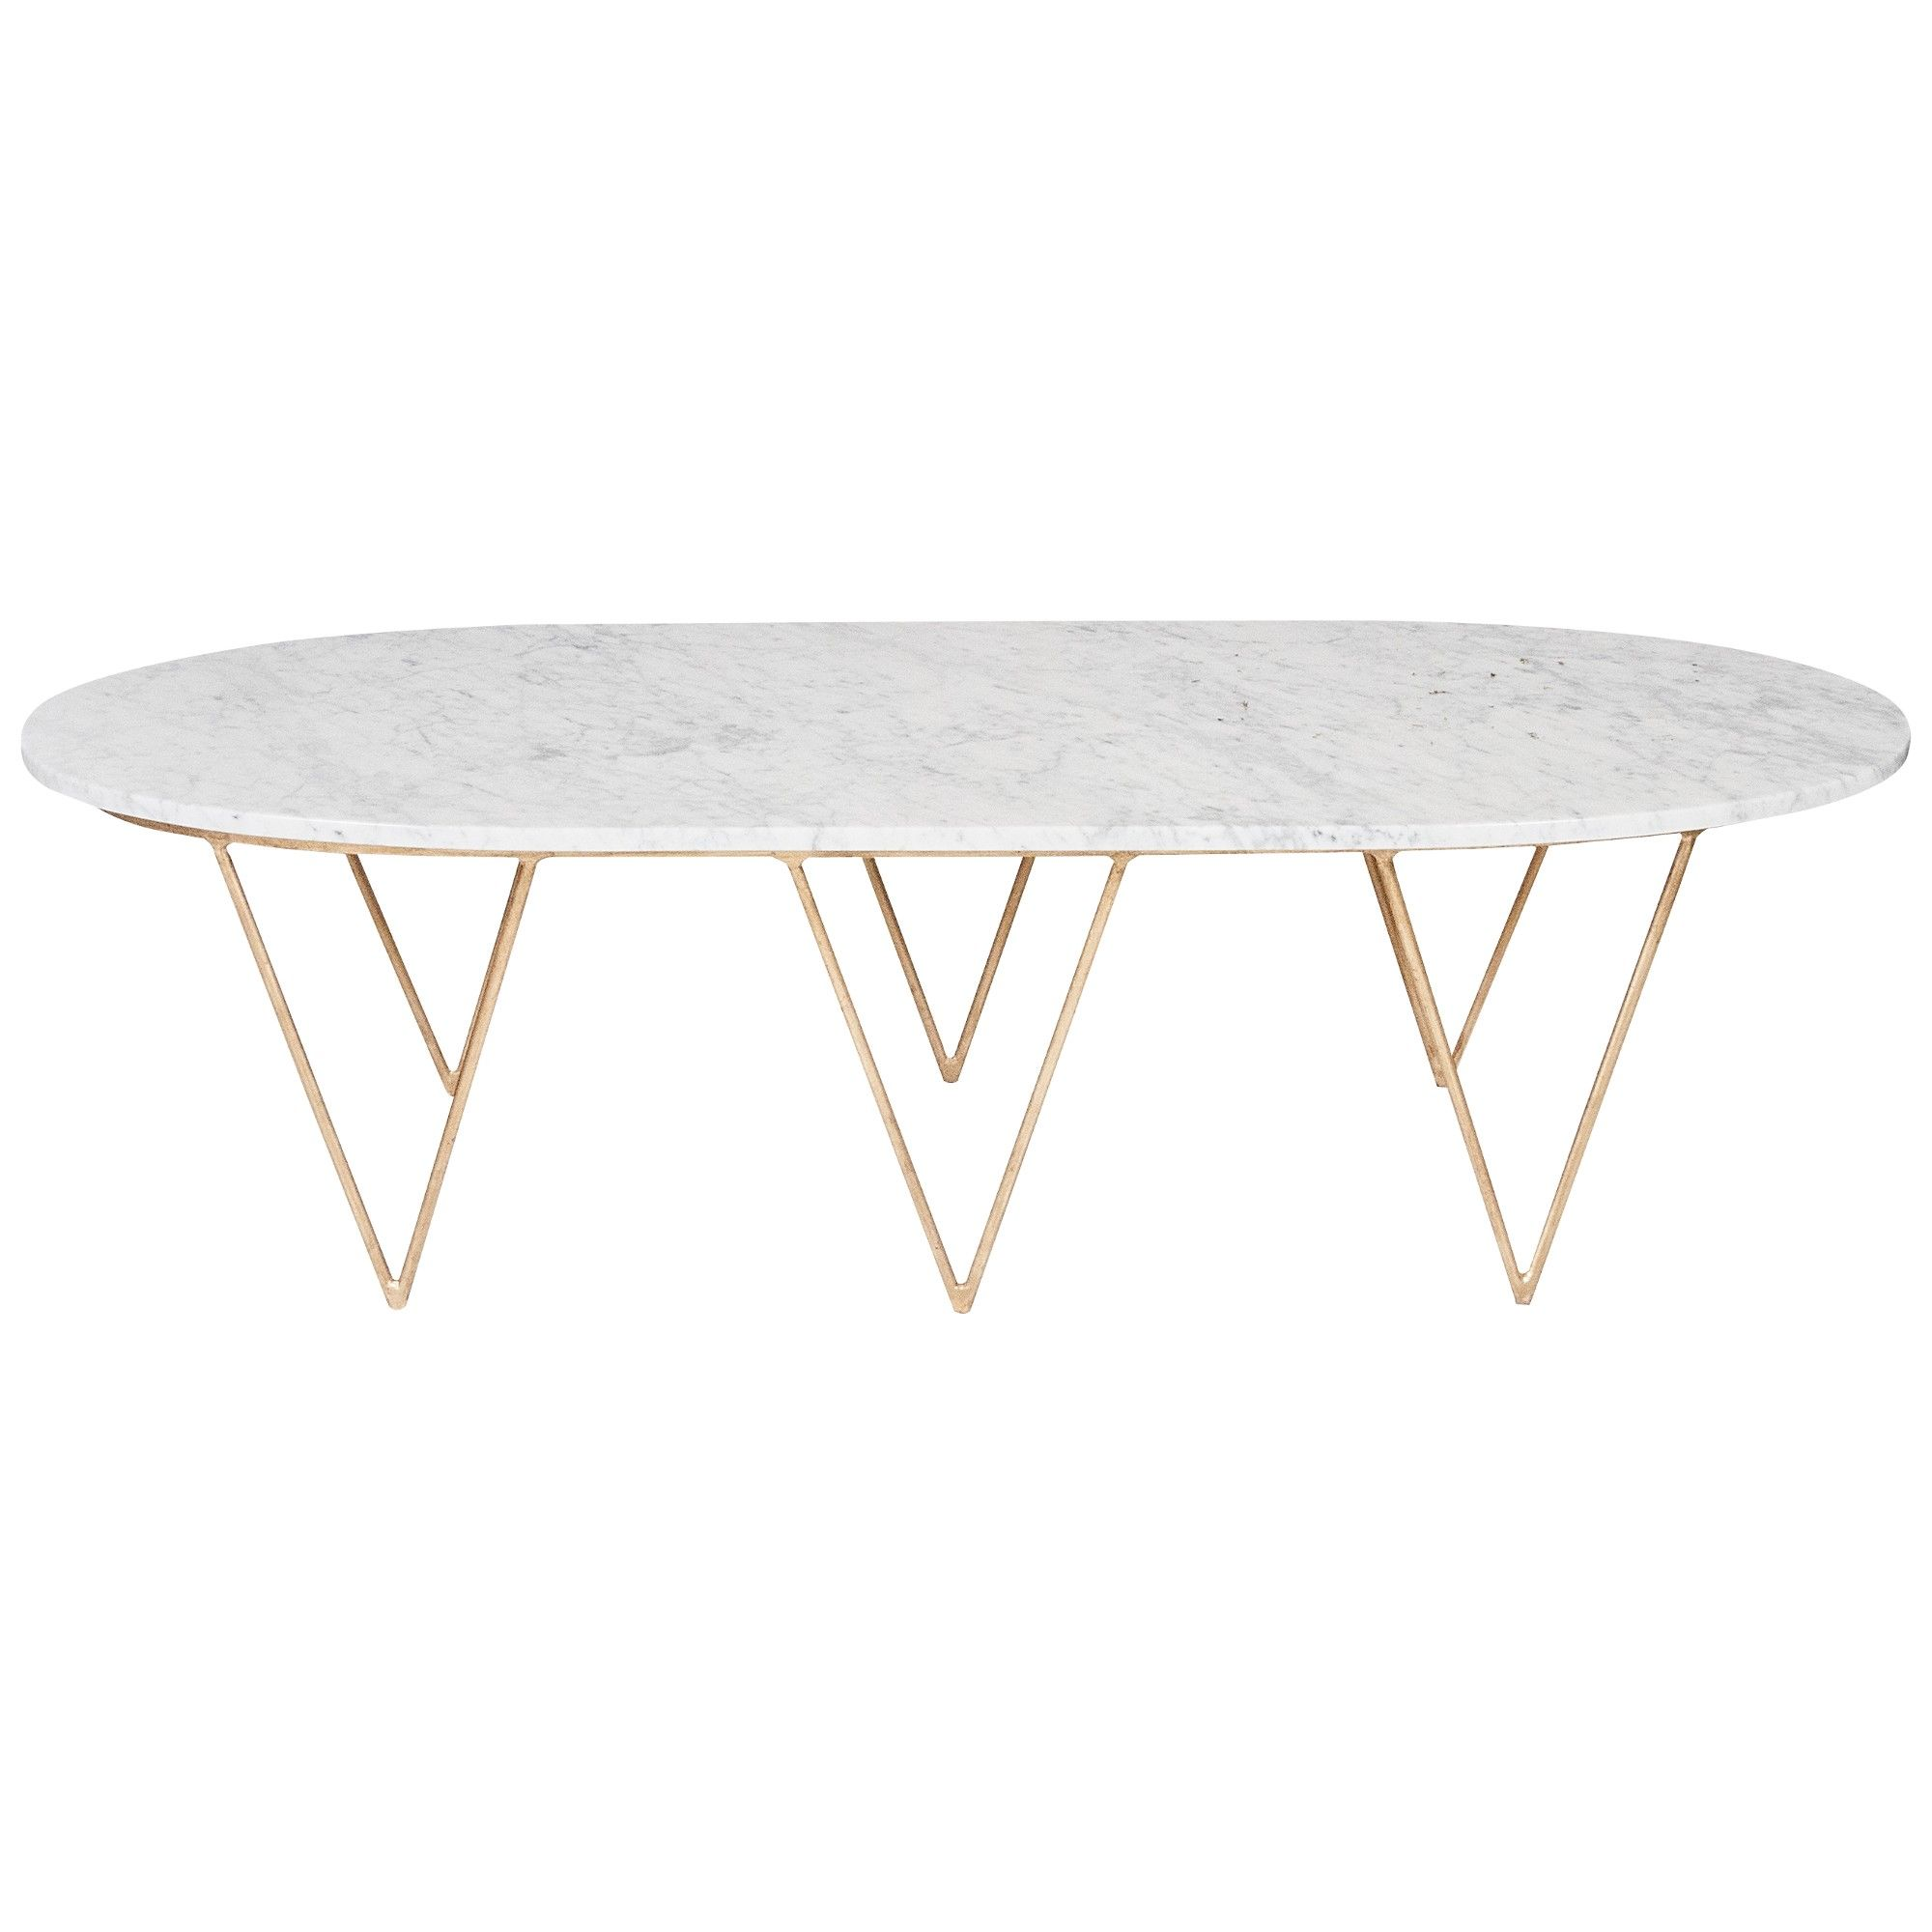 Love the triangular legs on this marble coffee table from Worlds